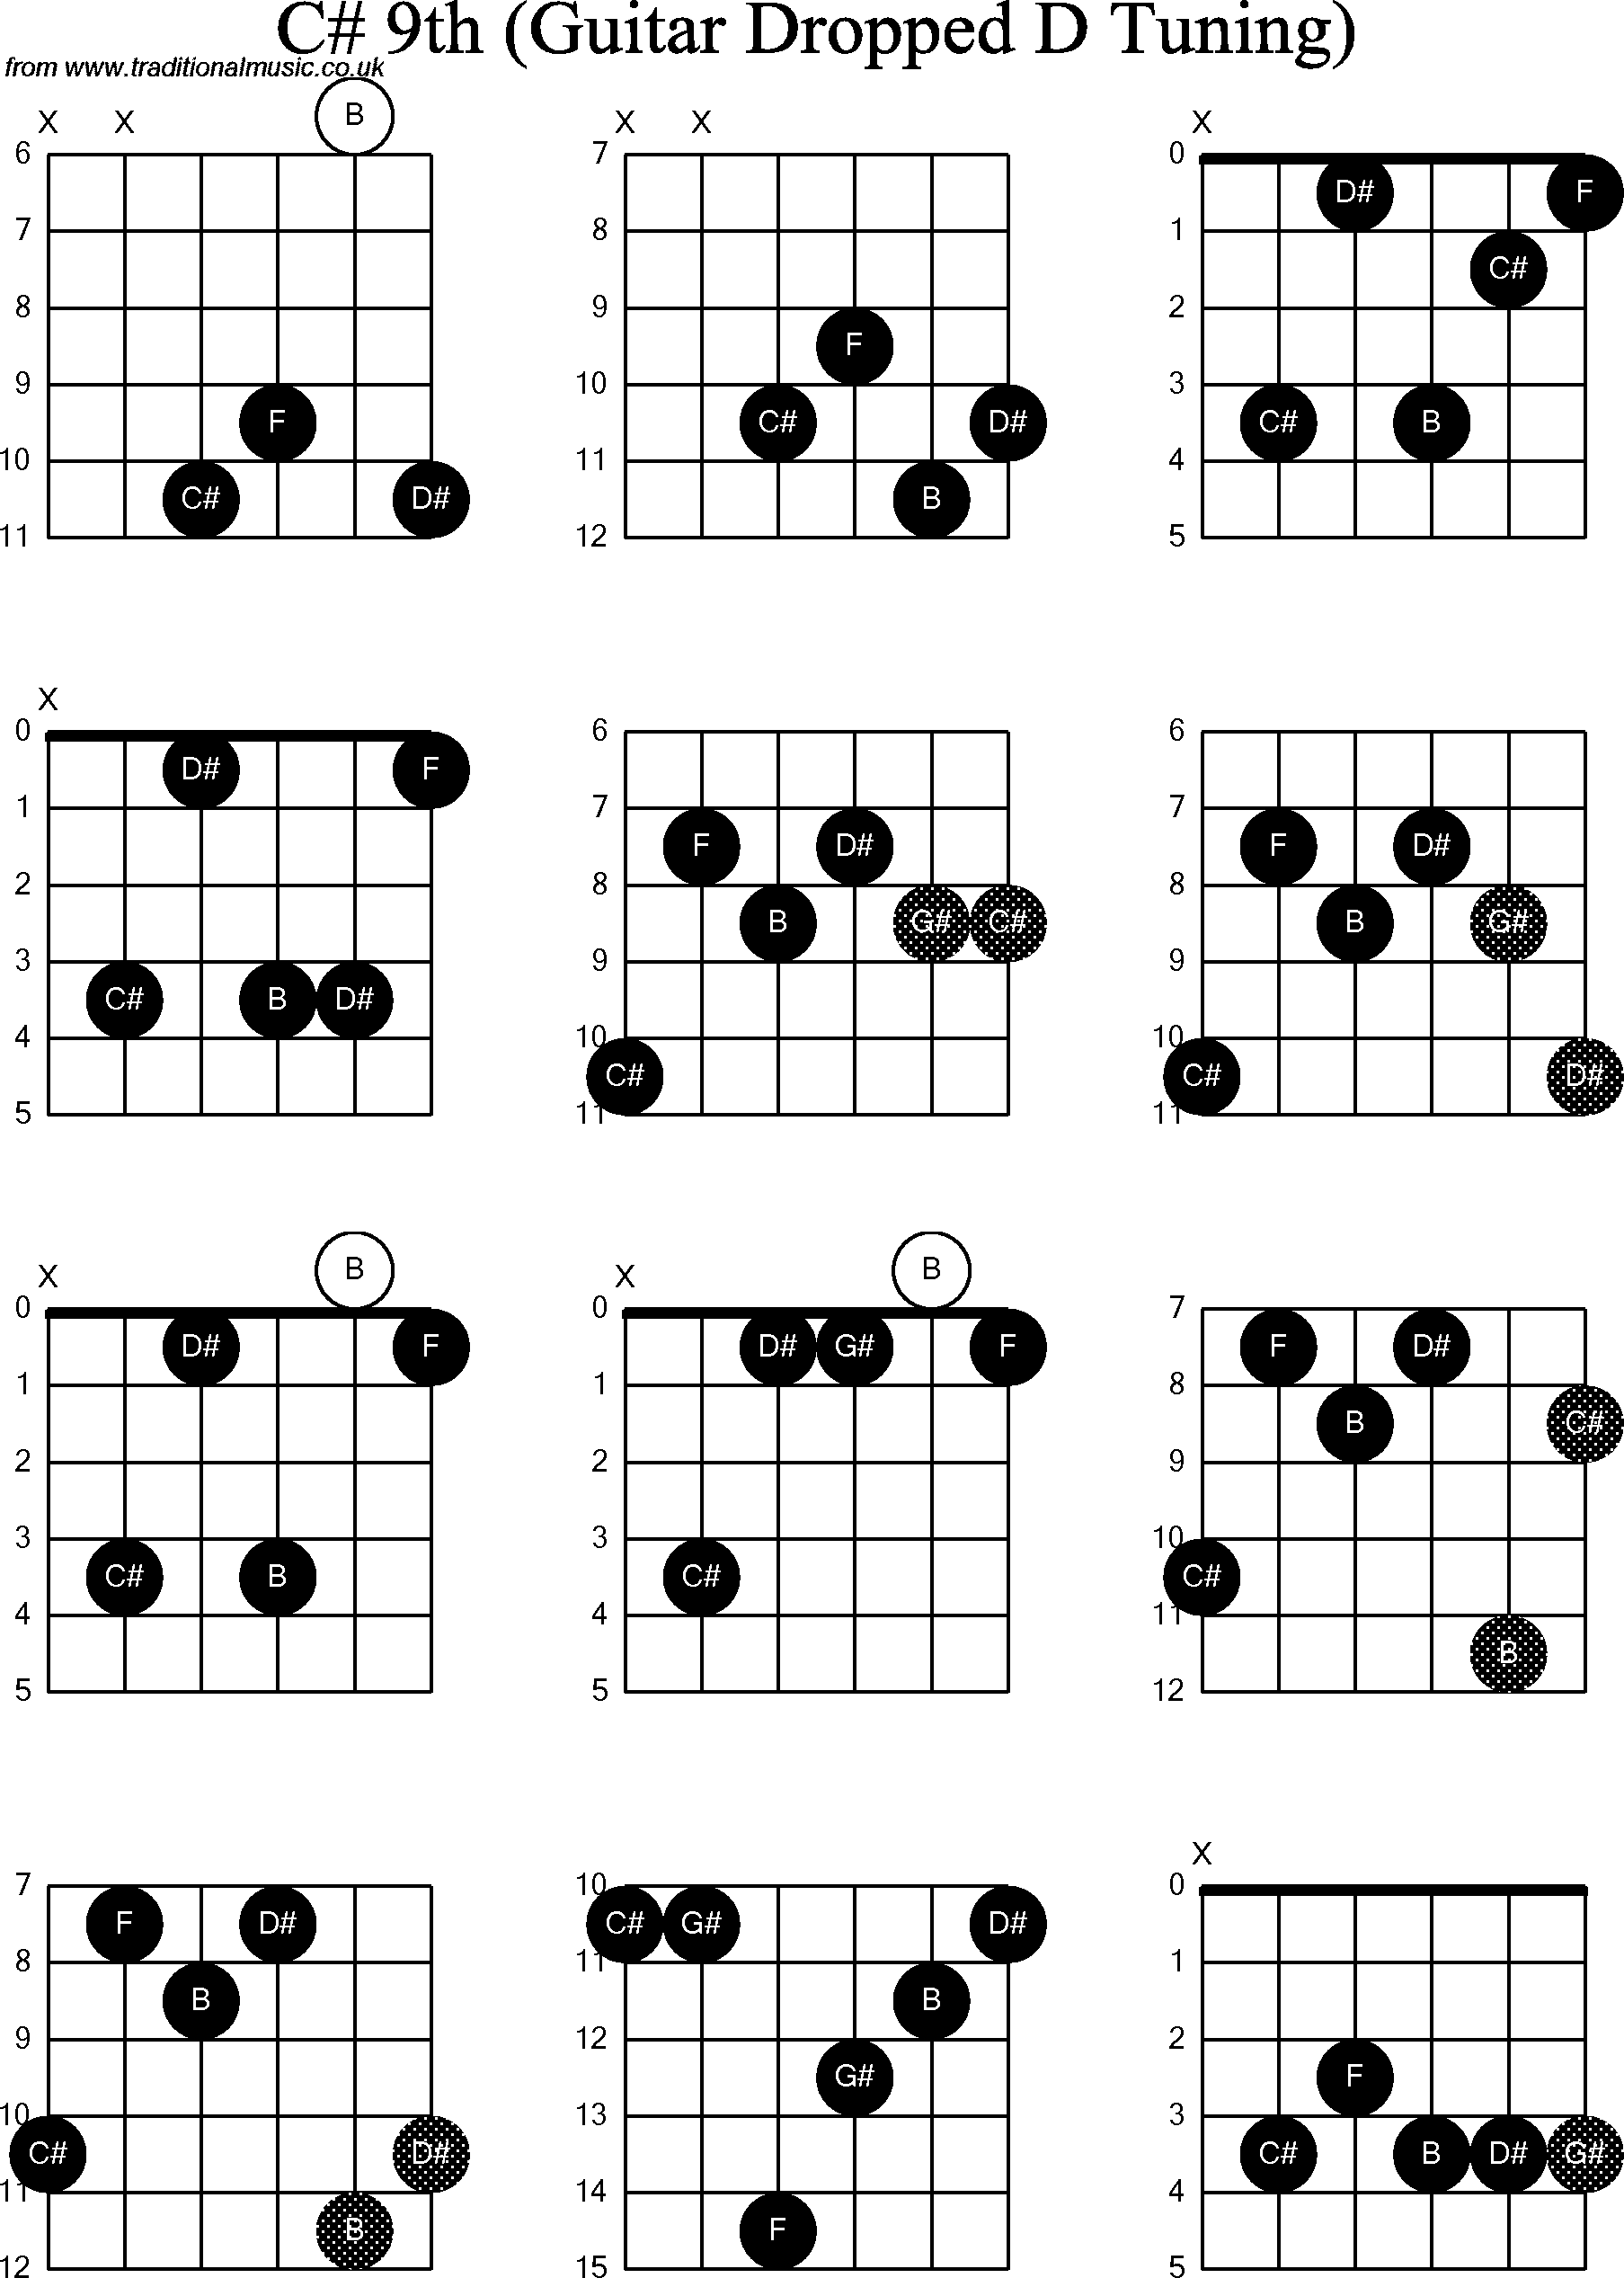 Chord diagrams for dropped d guitardadgbe c sharp9th chord diagrams for dropped d guitardadgbe c sharp9th hexwebz Choice Image